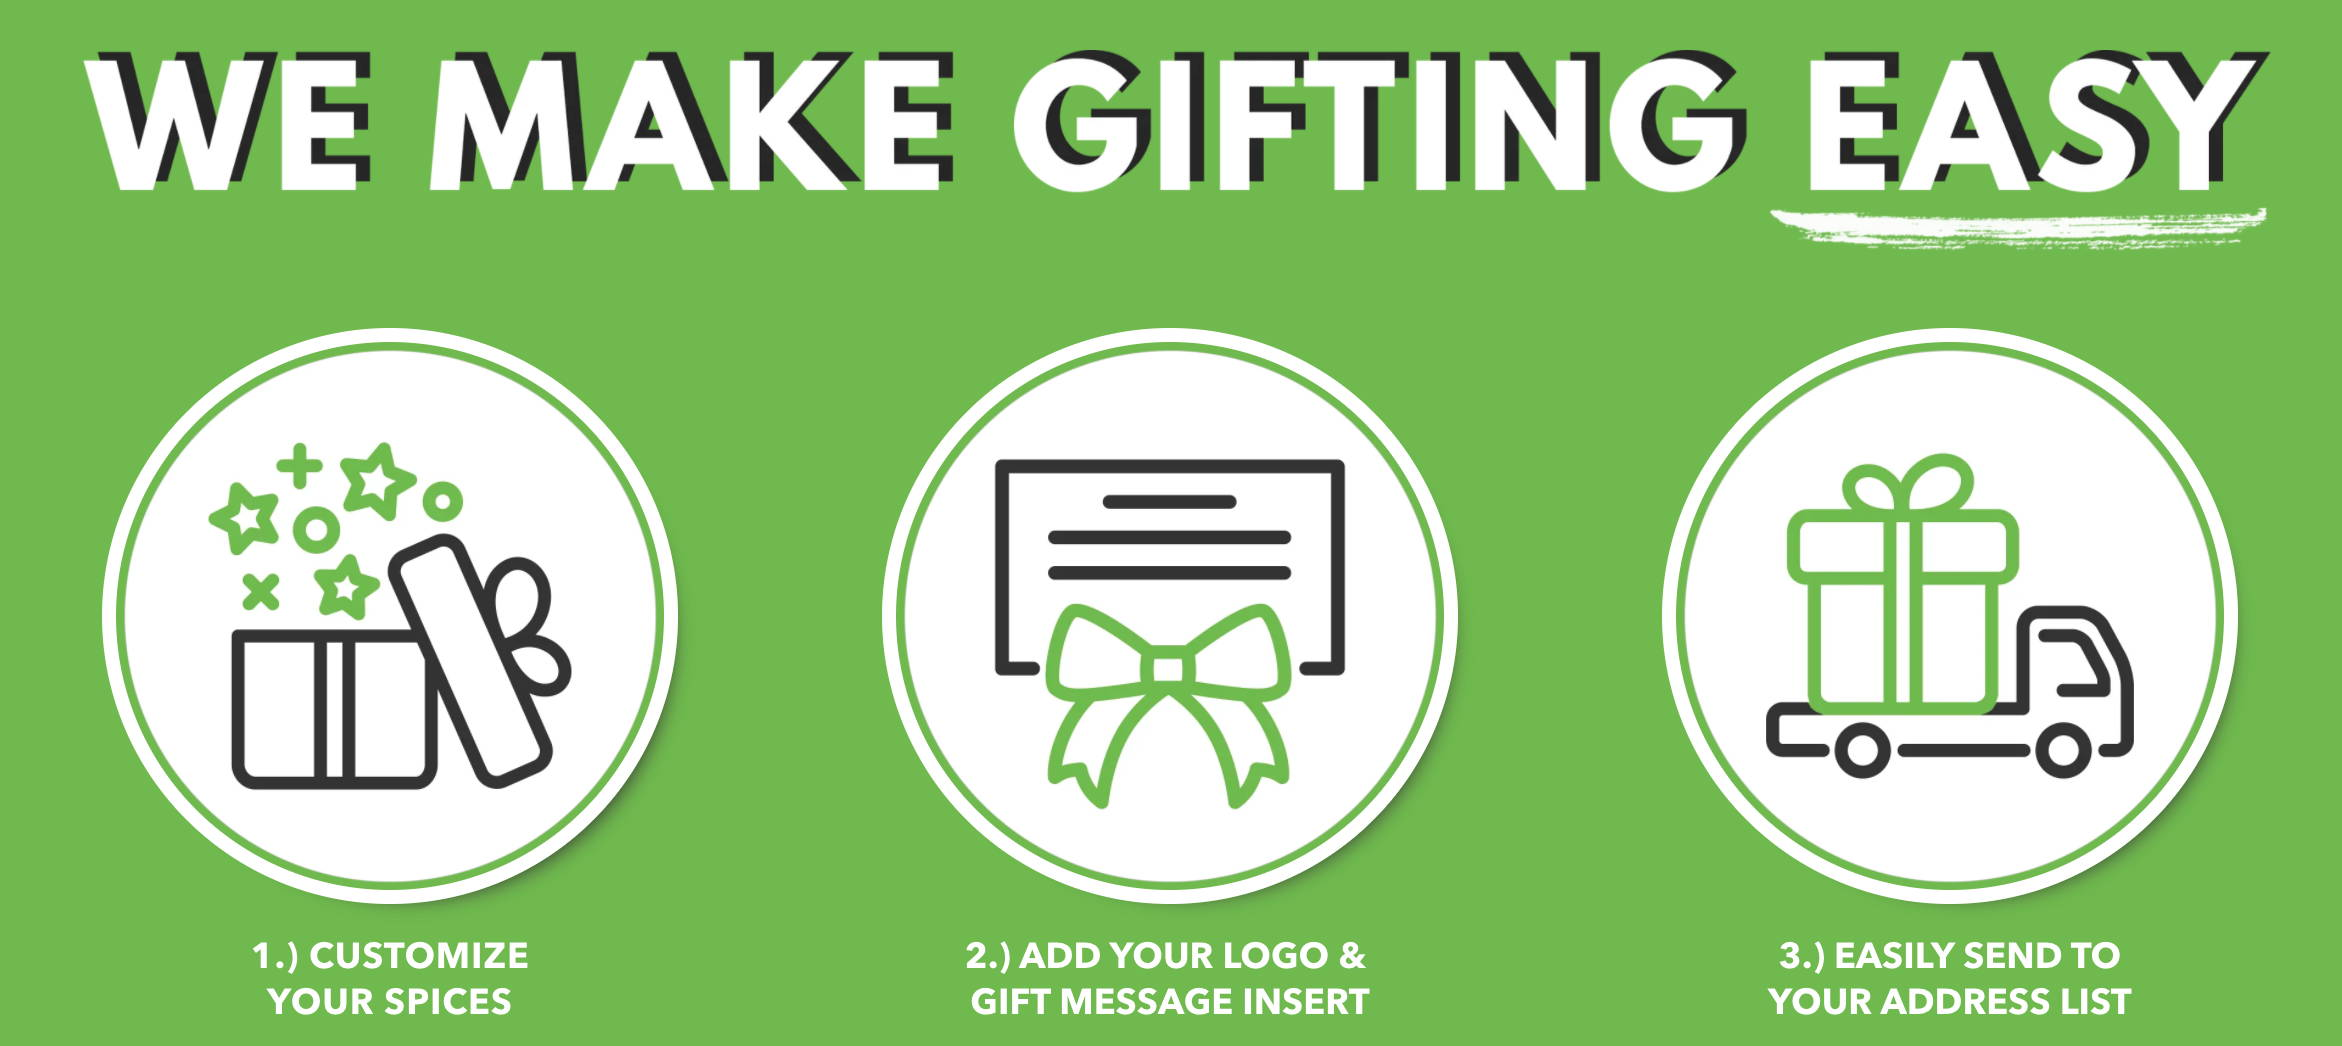 Gifting, Service, Easy, Delivery, Customize